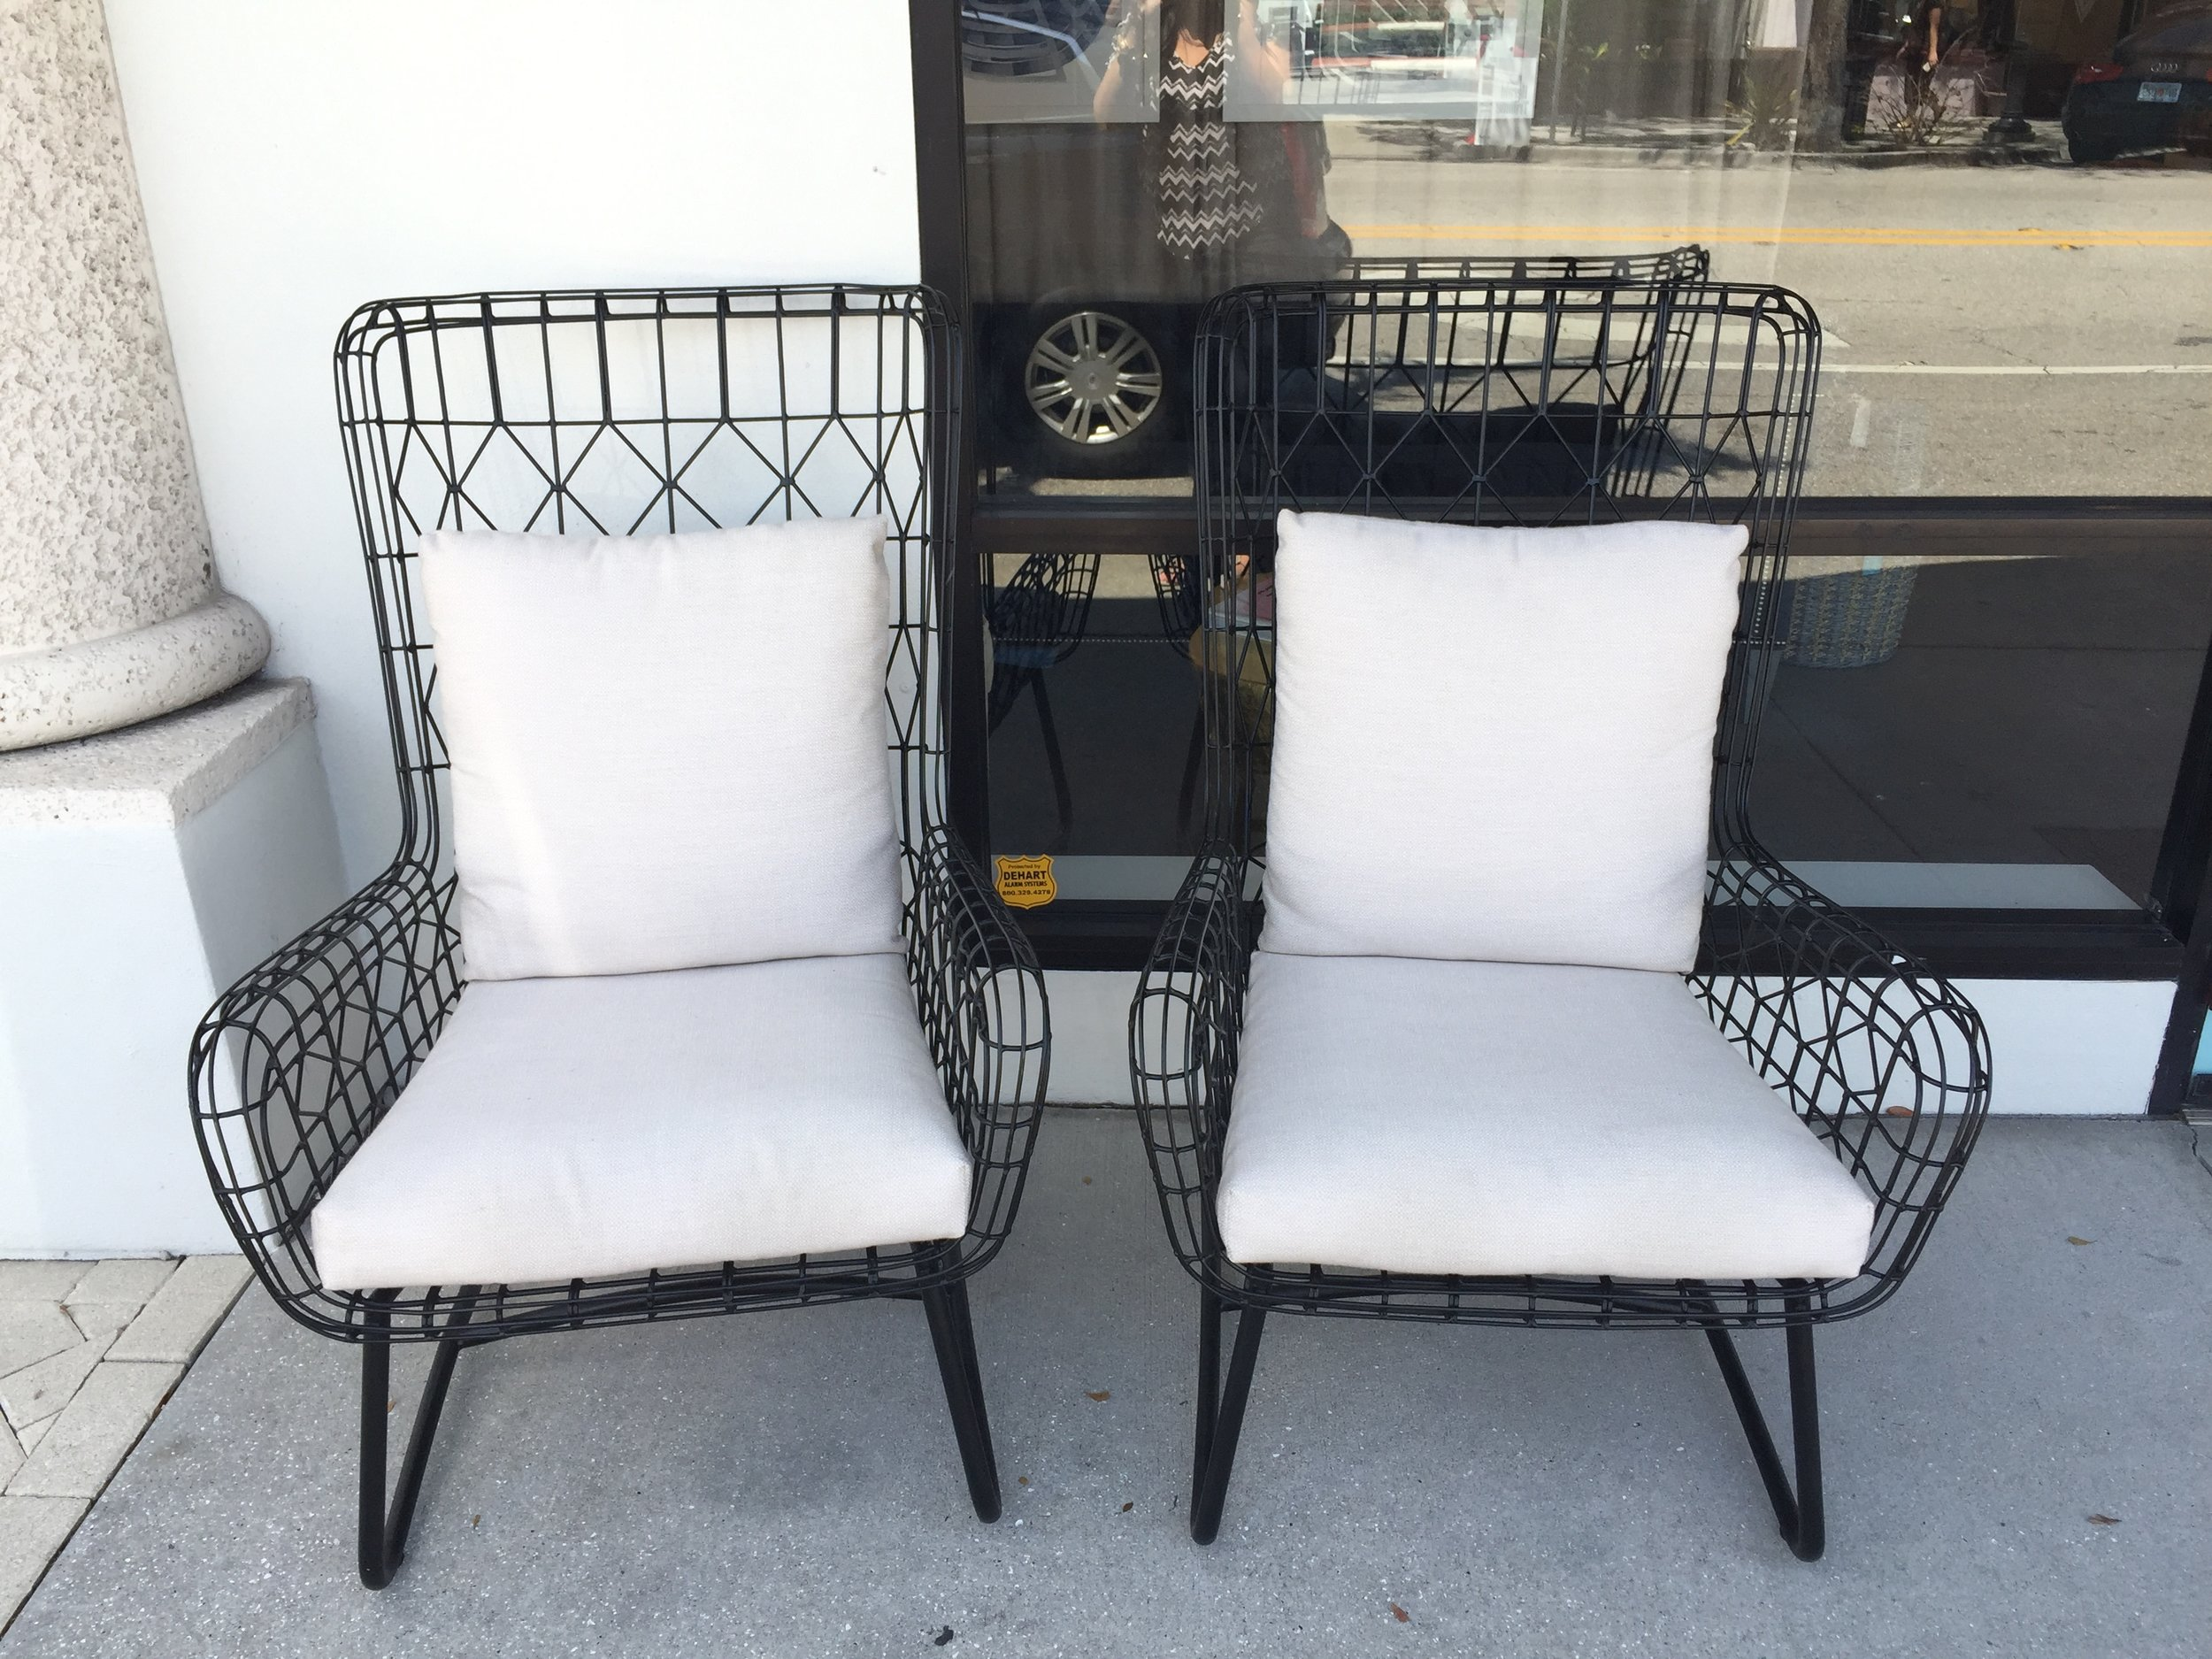 "CAPRI OUTDOOR WING CHAIRS, $XX ea  TRI-COLOR COWHIDE, METAL. DIMENSIONS 15.5""W X 17""D X 31.5""H (24.5""SH)  SPECIAL ORDER ITEM. AVAILABLE IN DIFFERENT OUTDOOR FABRICS. POWDER COATED STAINLESS STELL FRAME. PRICES VARY BASED ON FABRIC. SHOWN IN GRADE C - IN/OUT SAND WEAVE"